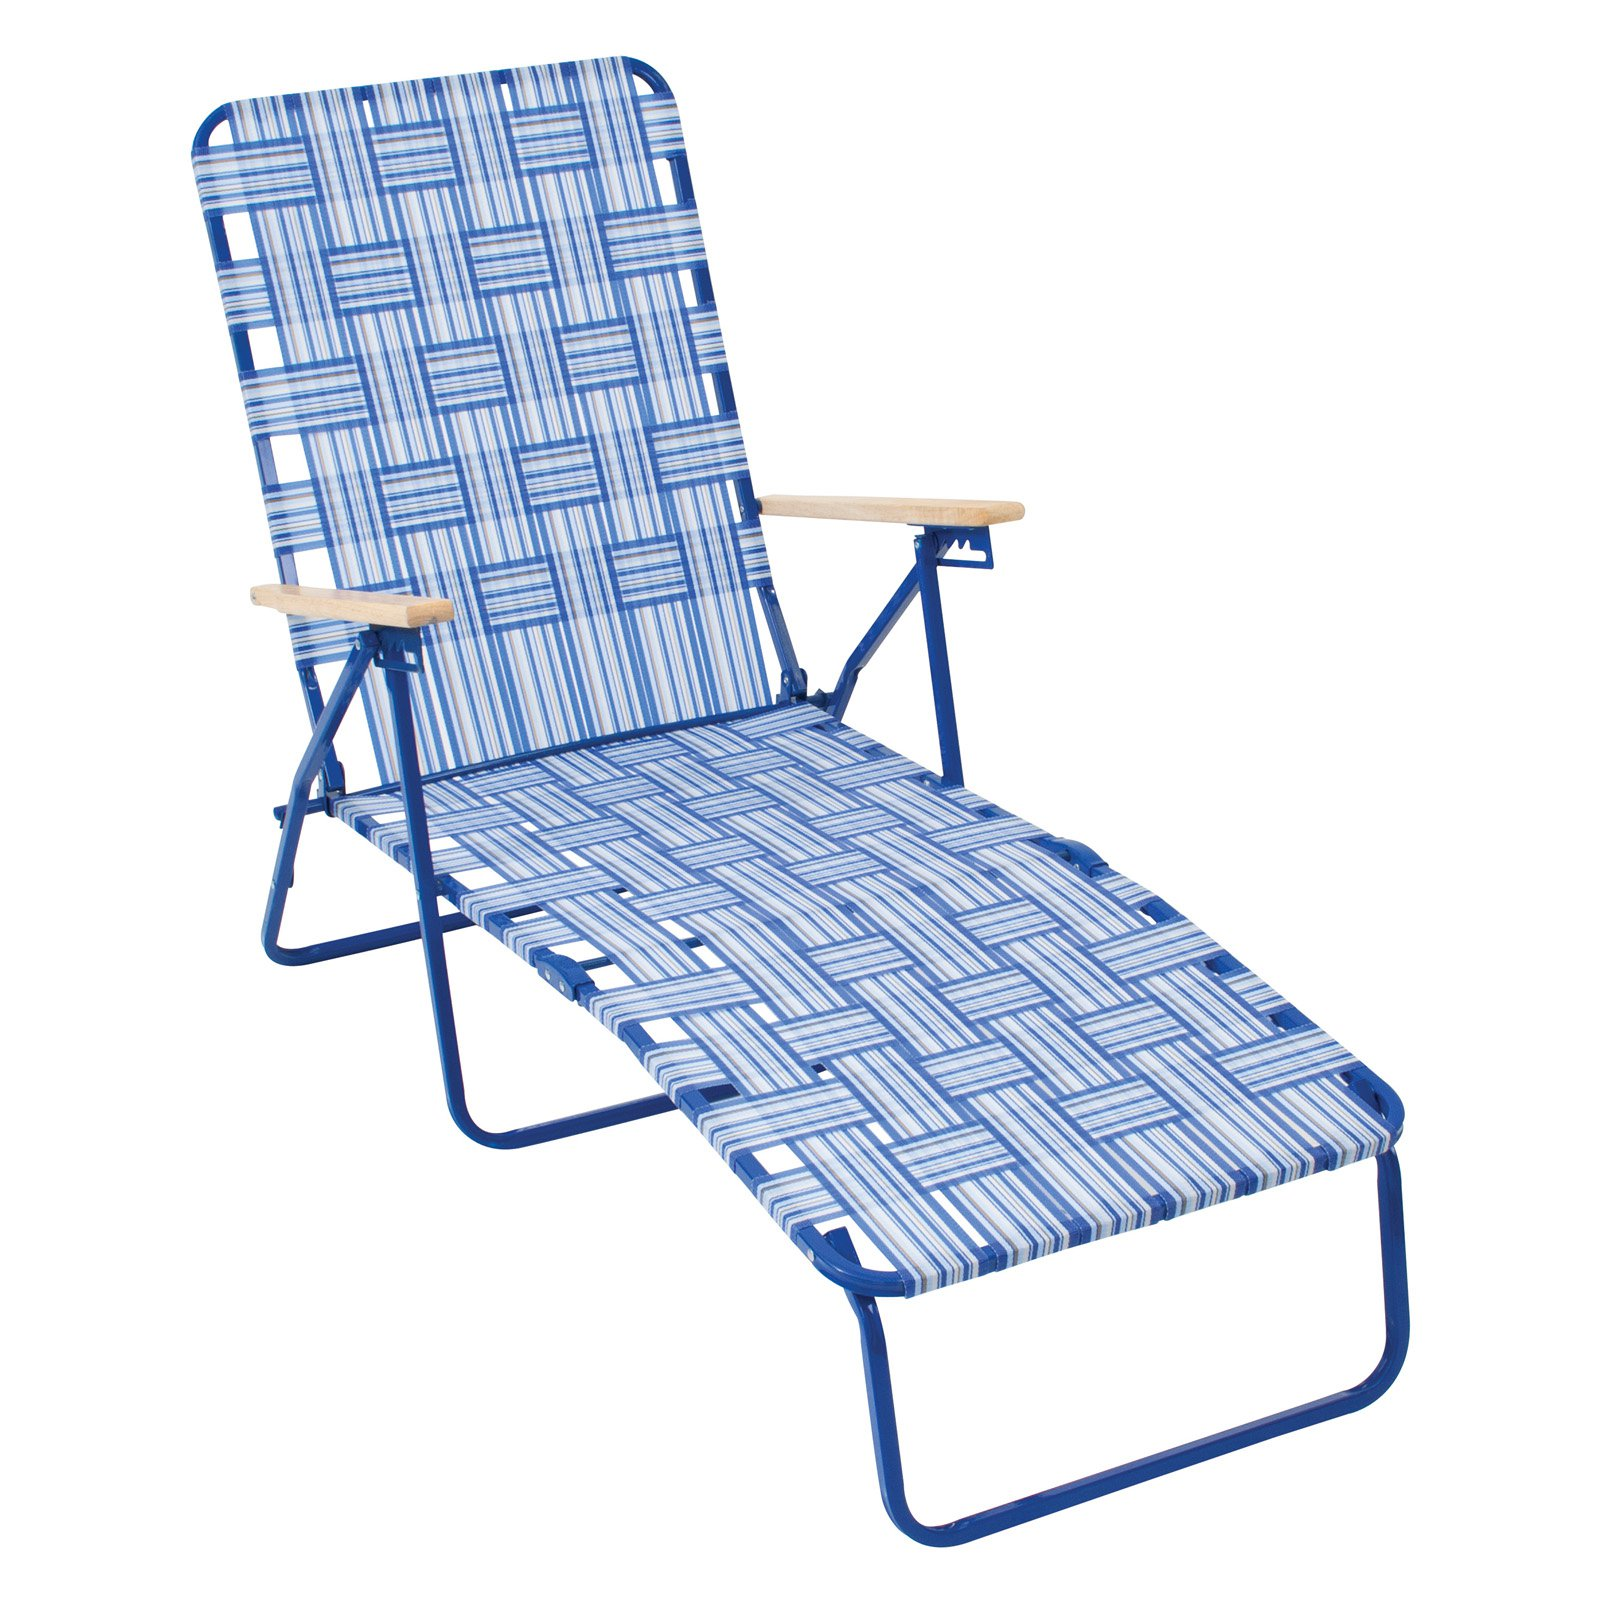 Rio Brands Rio Deluxe Folding Web Chaise Lounge Chair by